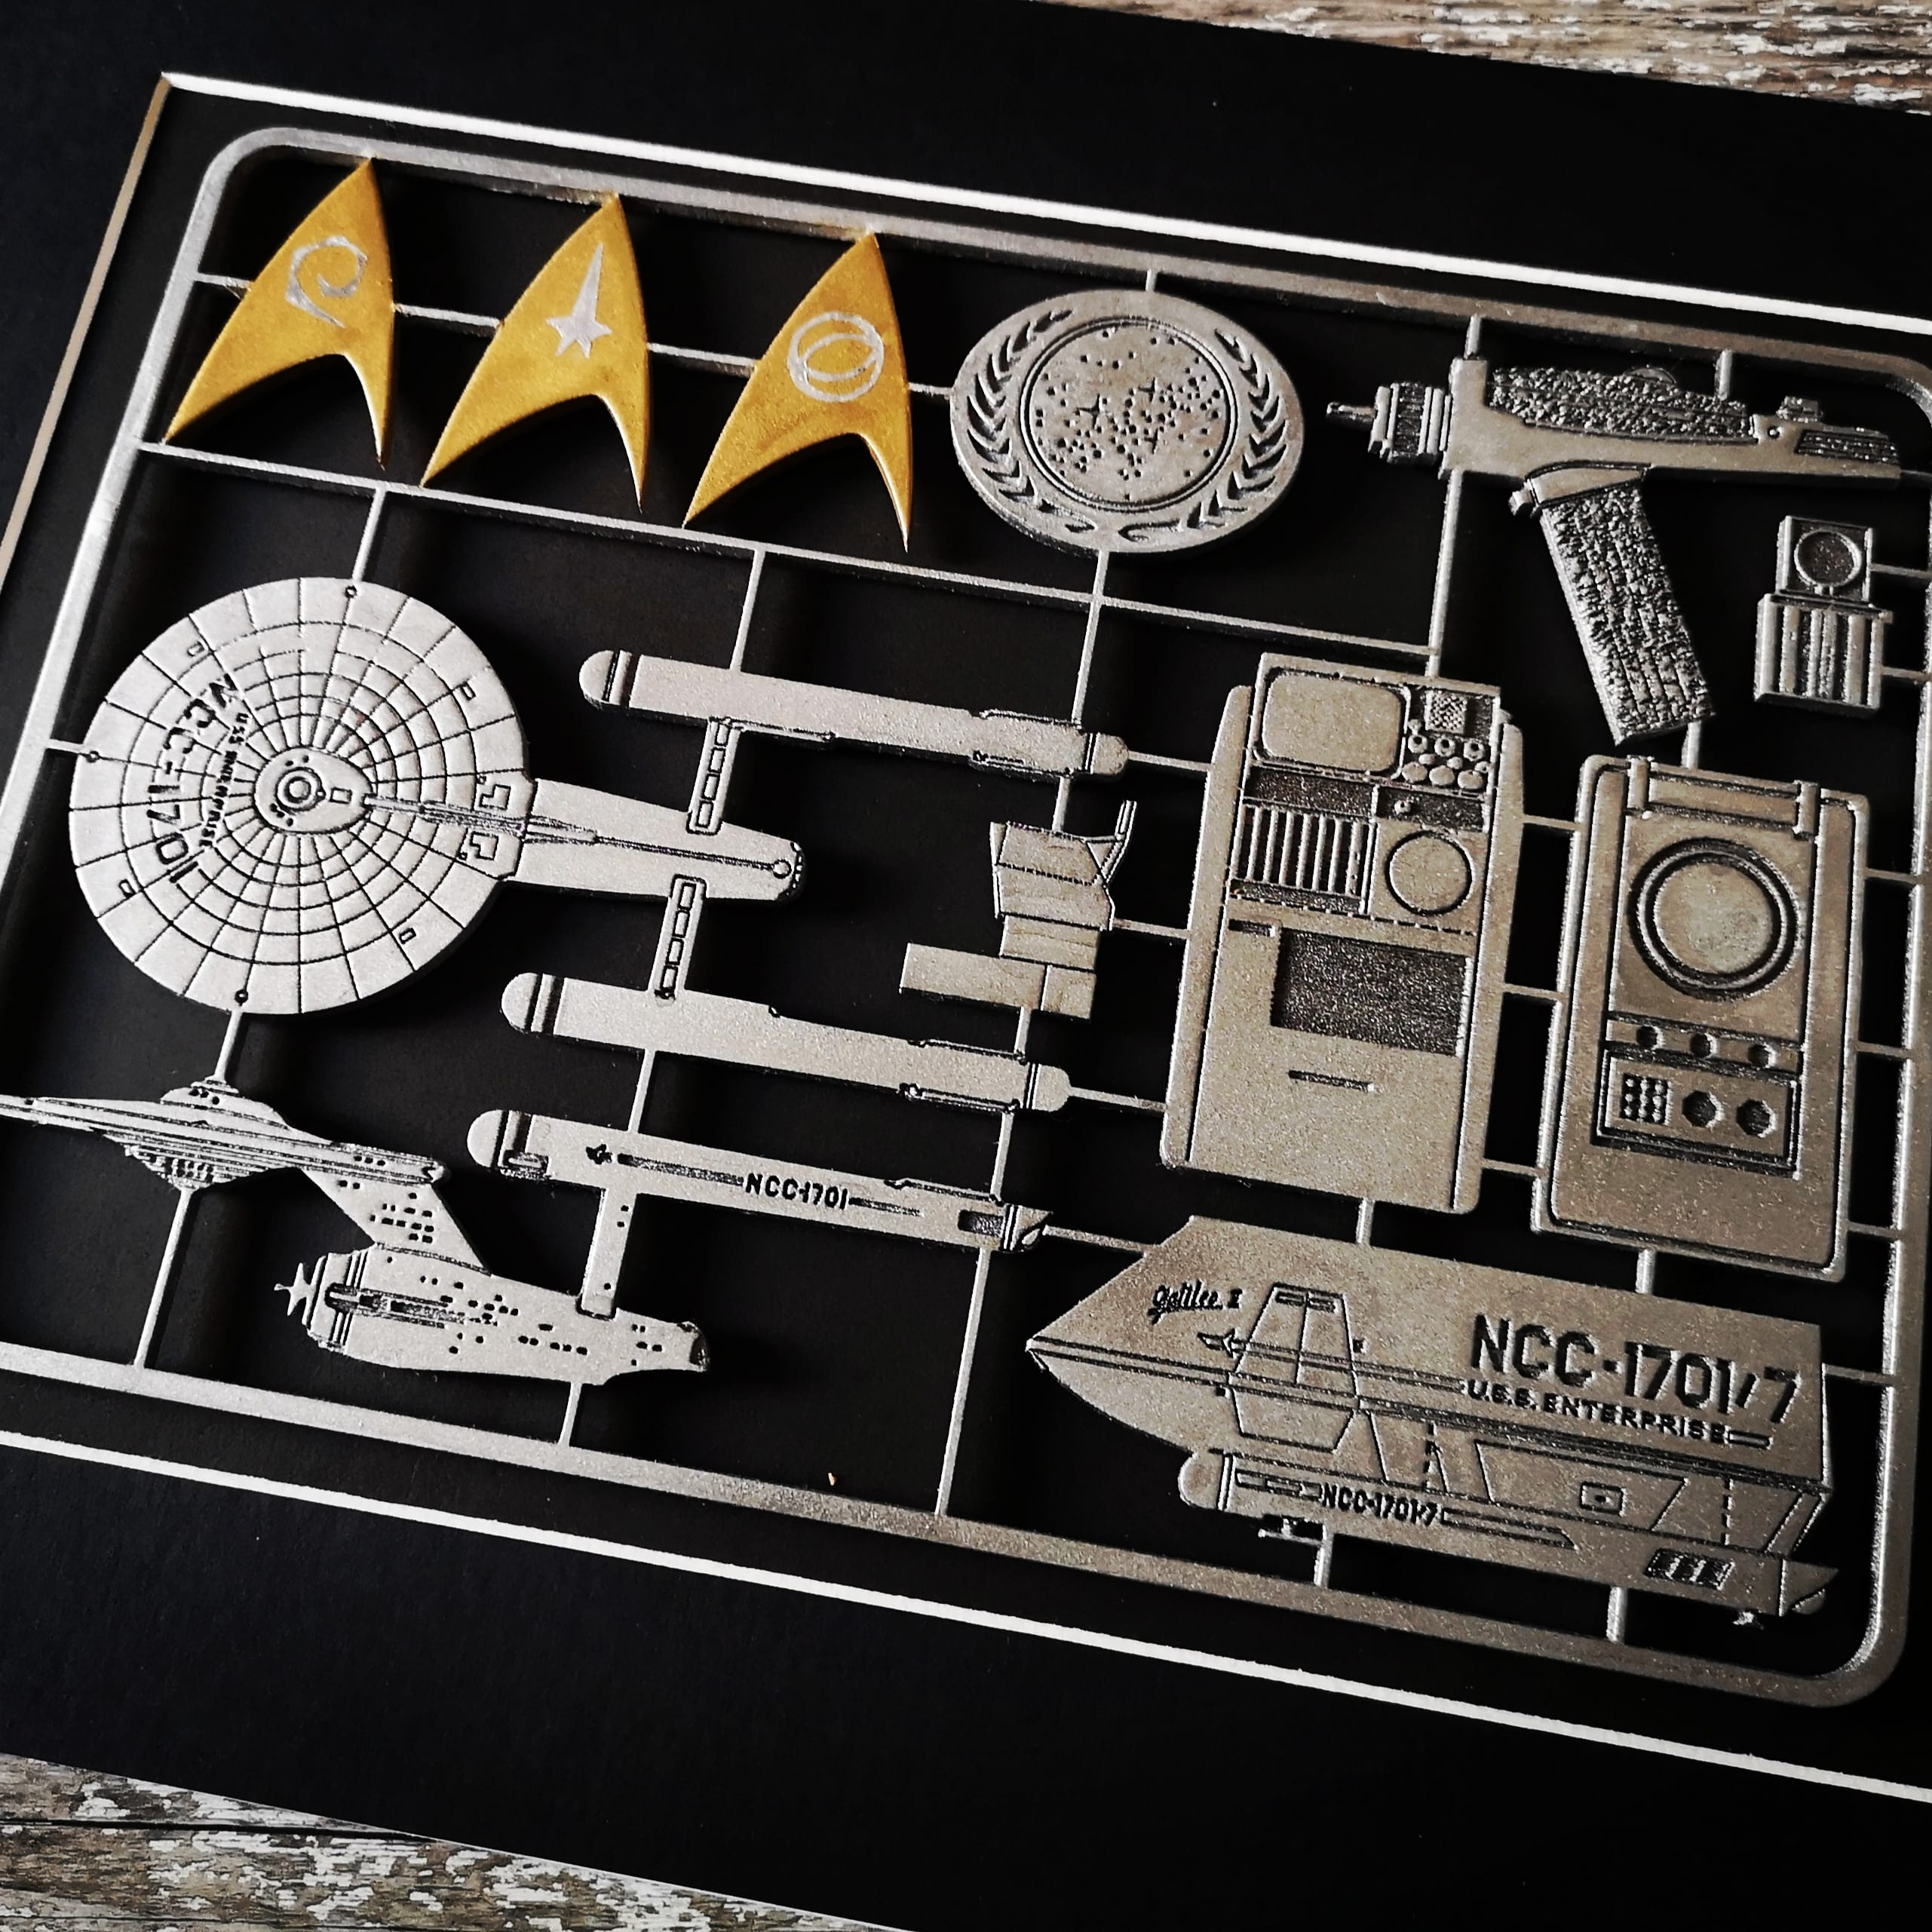 Trek Original Series Model Kit Art Panel